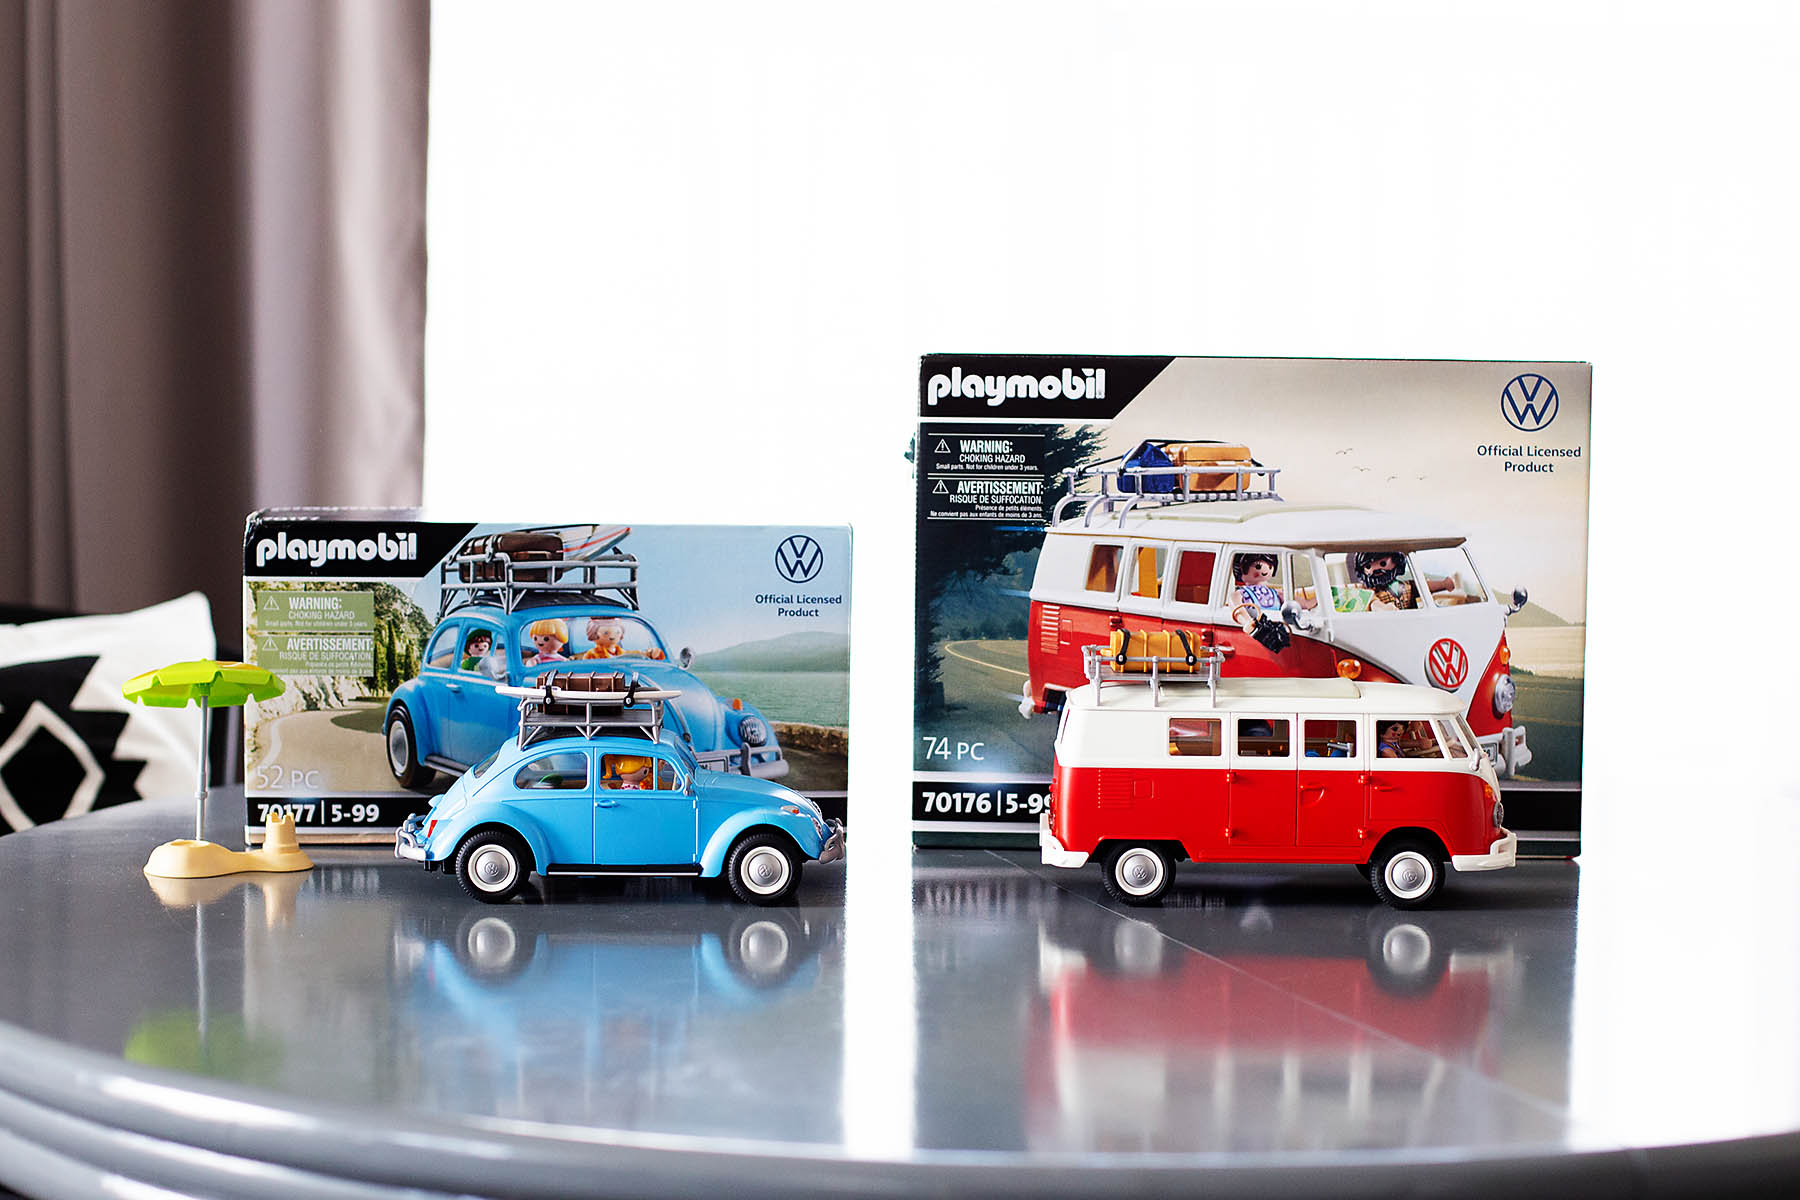 New Volkswagen Beetle and T1 Camping Bus PLAYMOBIL playsets